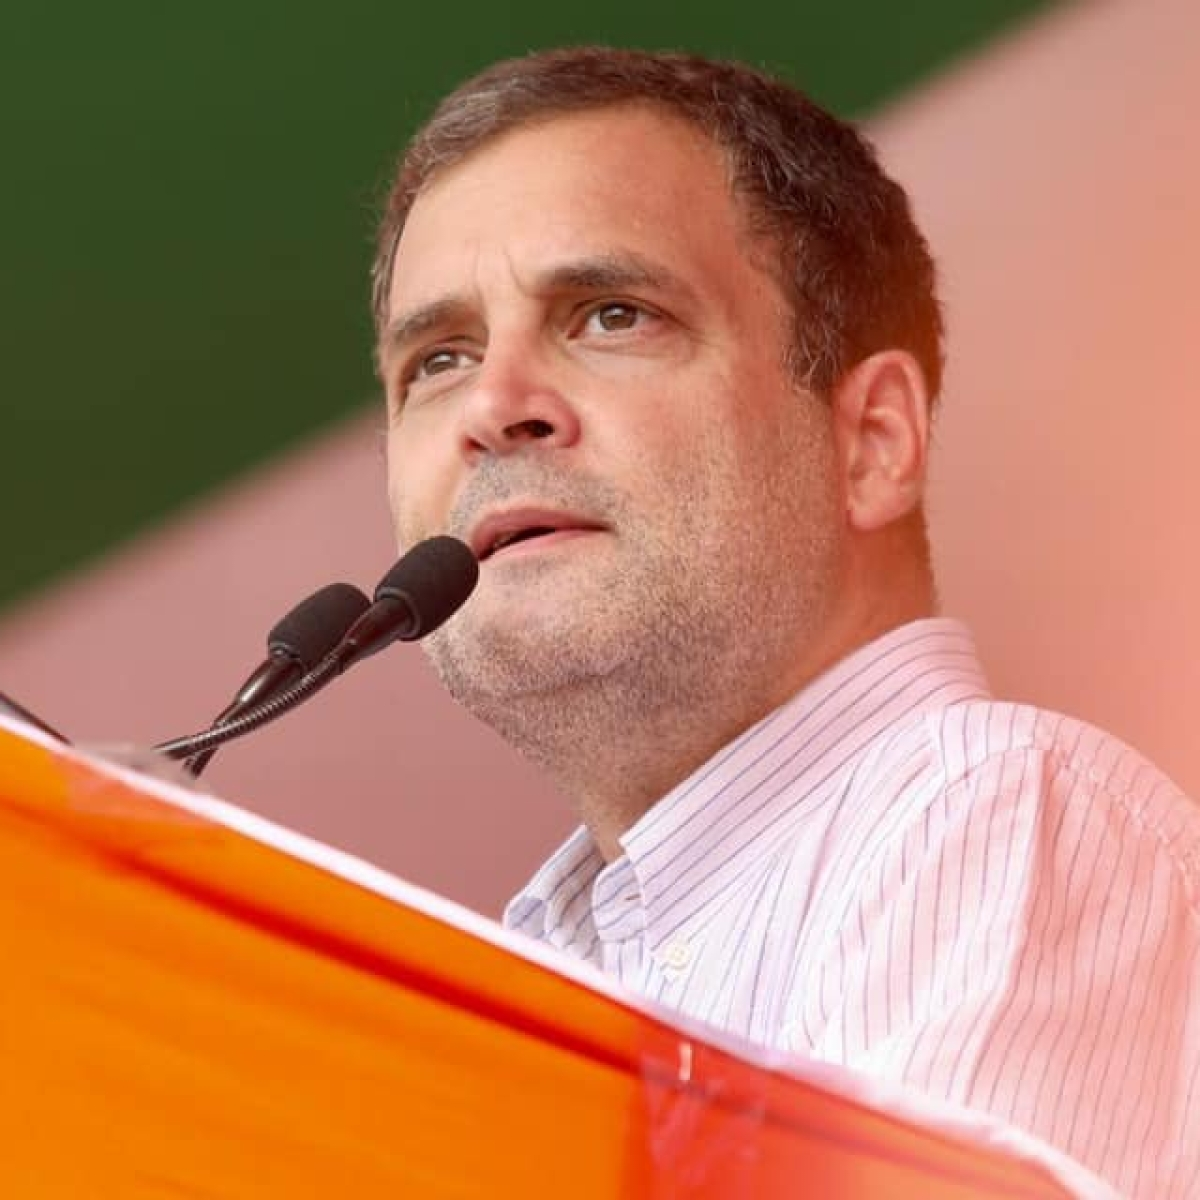 'Modi Mitr-centric drive...': As Centre draws up plan to privatise public sector banks, Rahul Gandhi hits out at PM